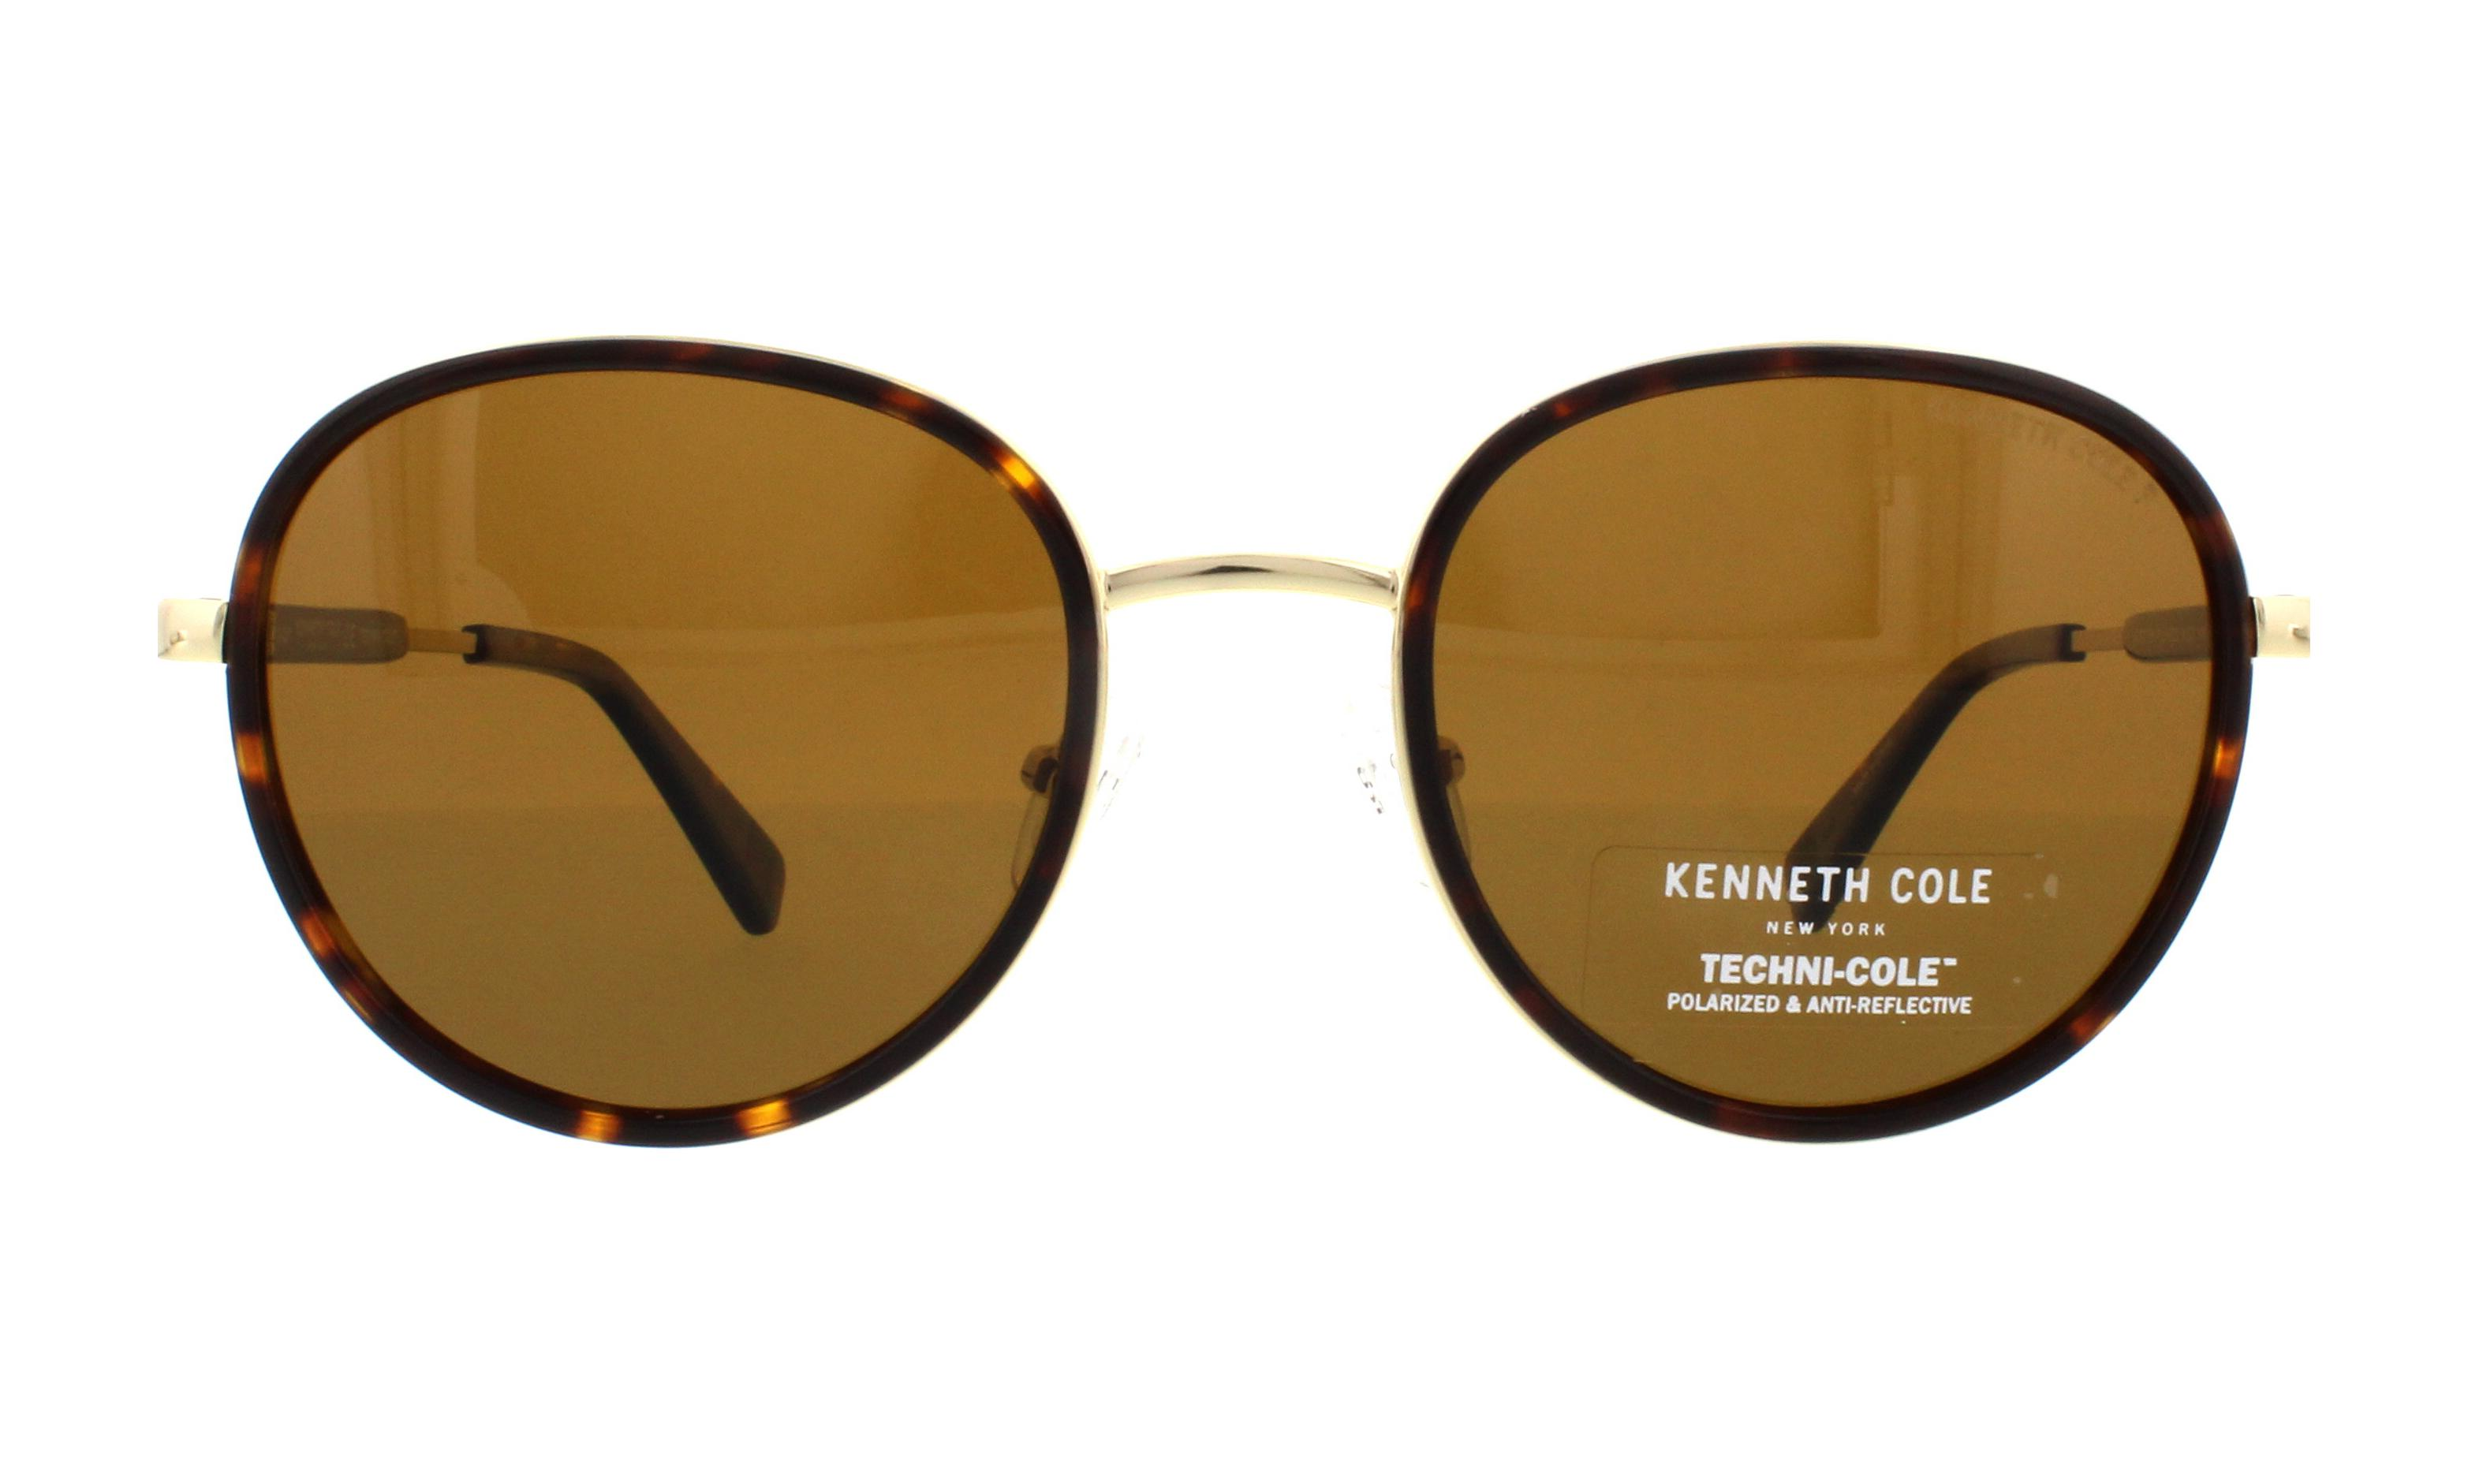 7684e26a97 Designer Frames Outlet. Kenneth Cole KC7227